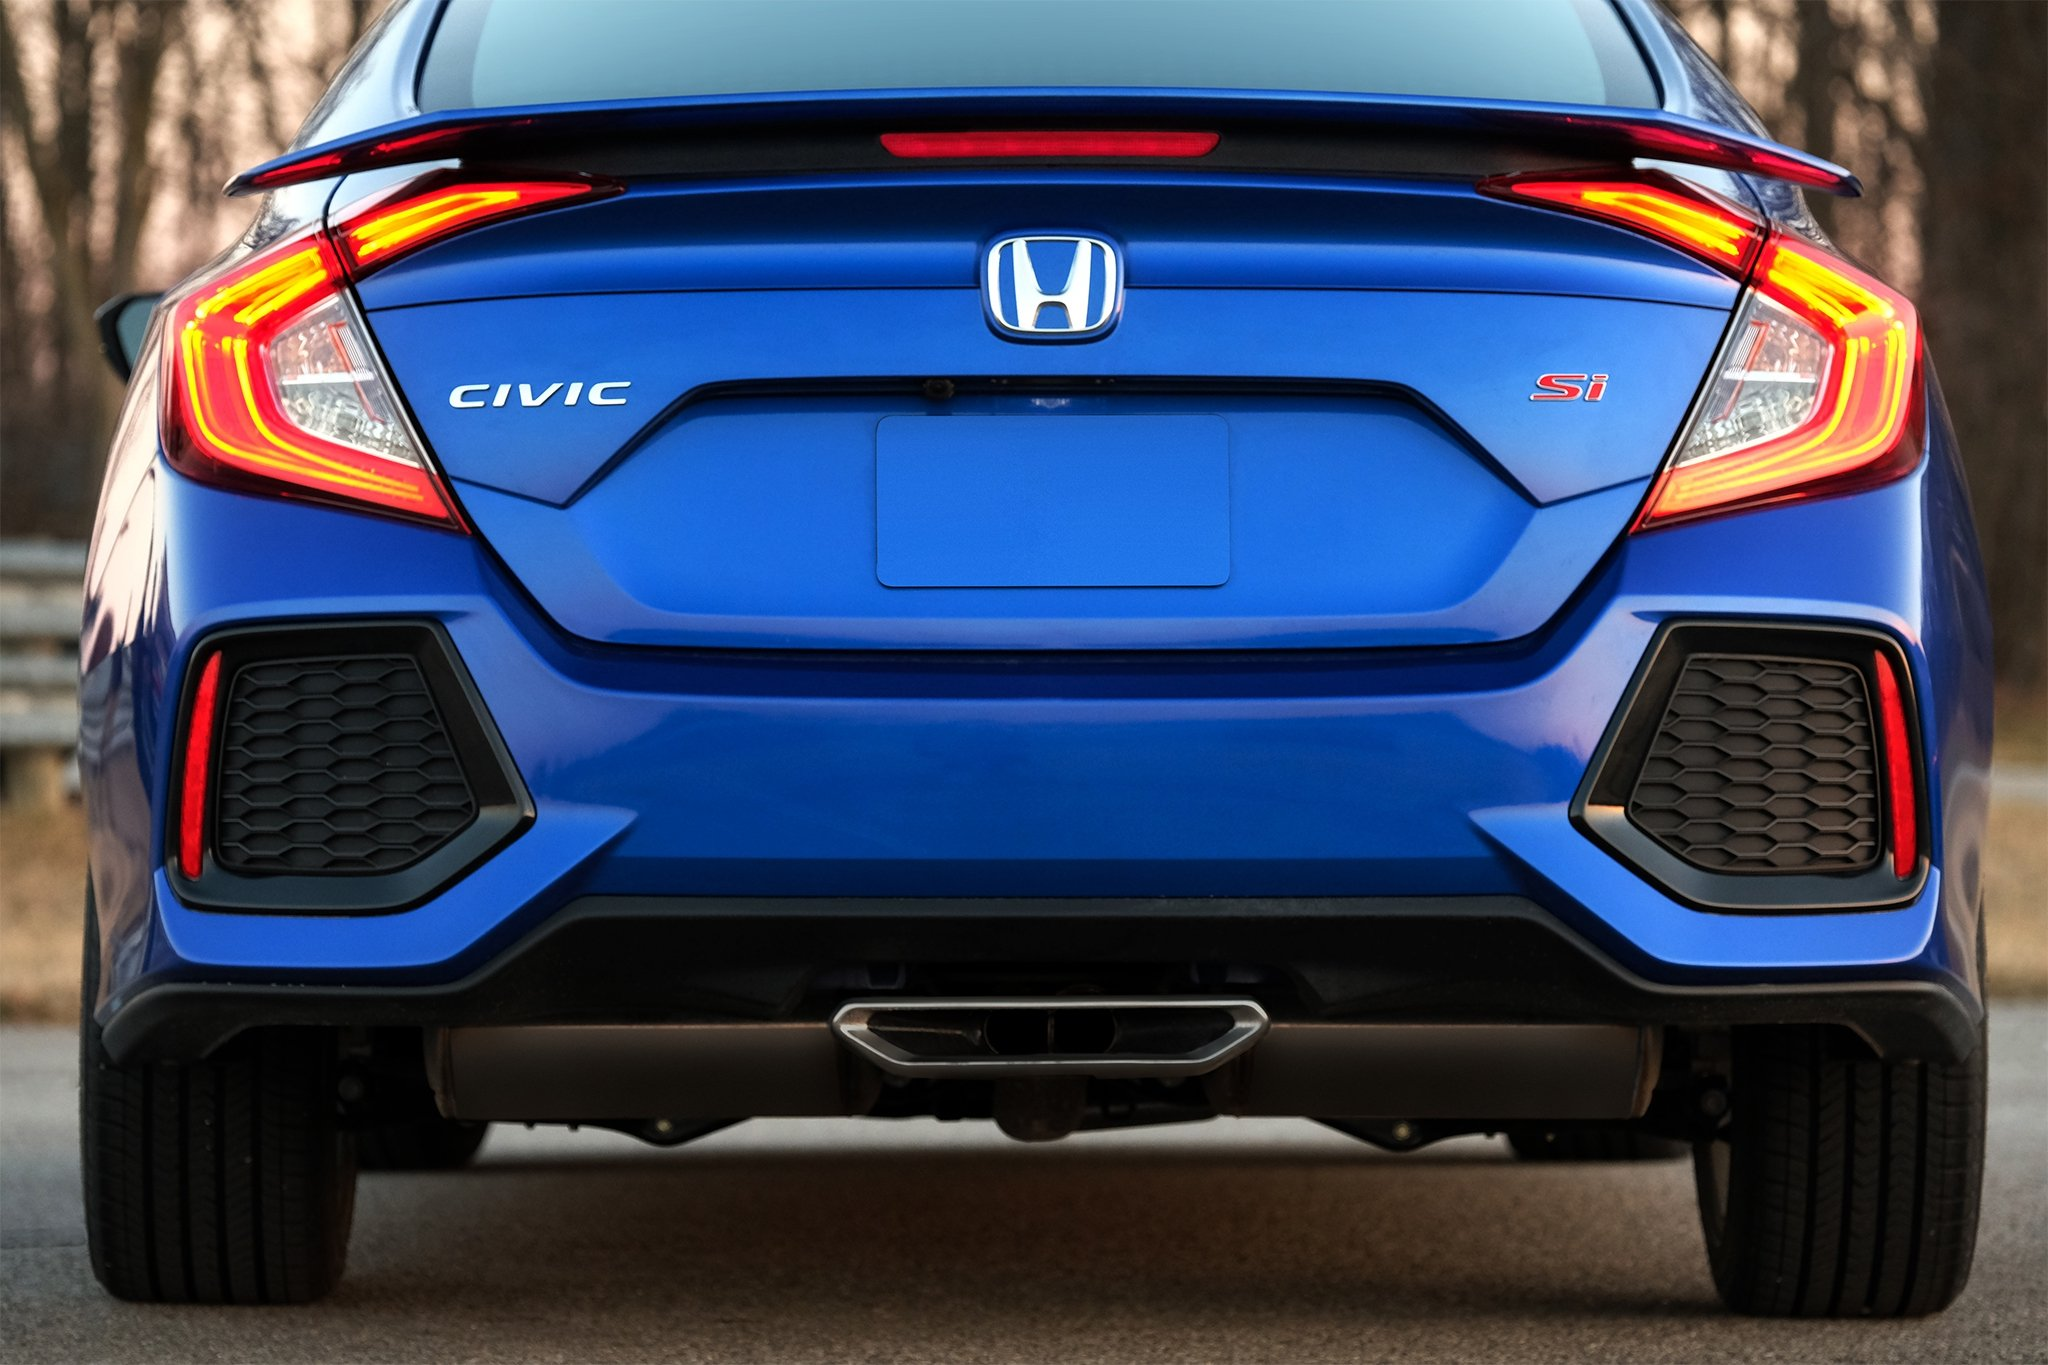 2018 honda civic si has arrived holmes honda. Black Bedroom Furniture Sets. Home Design Ideas